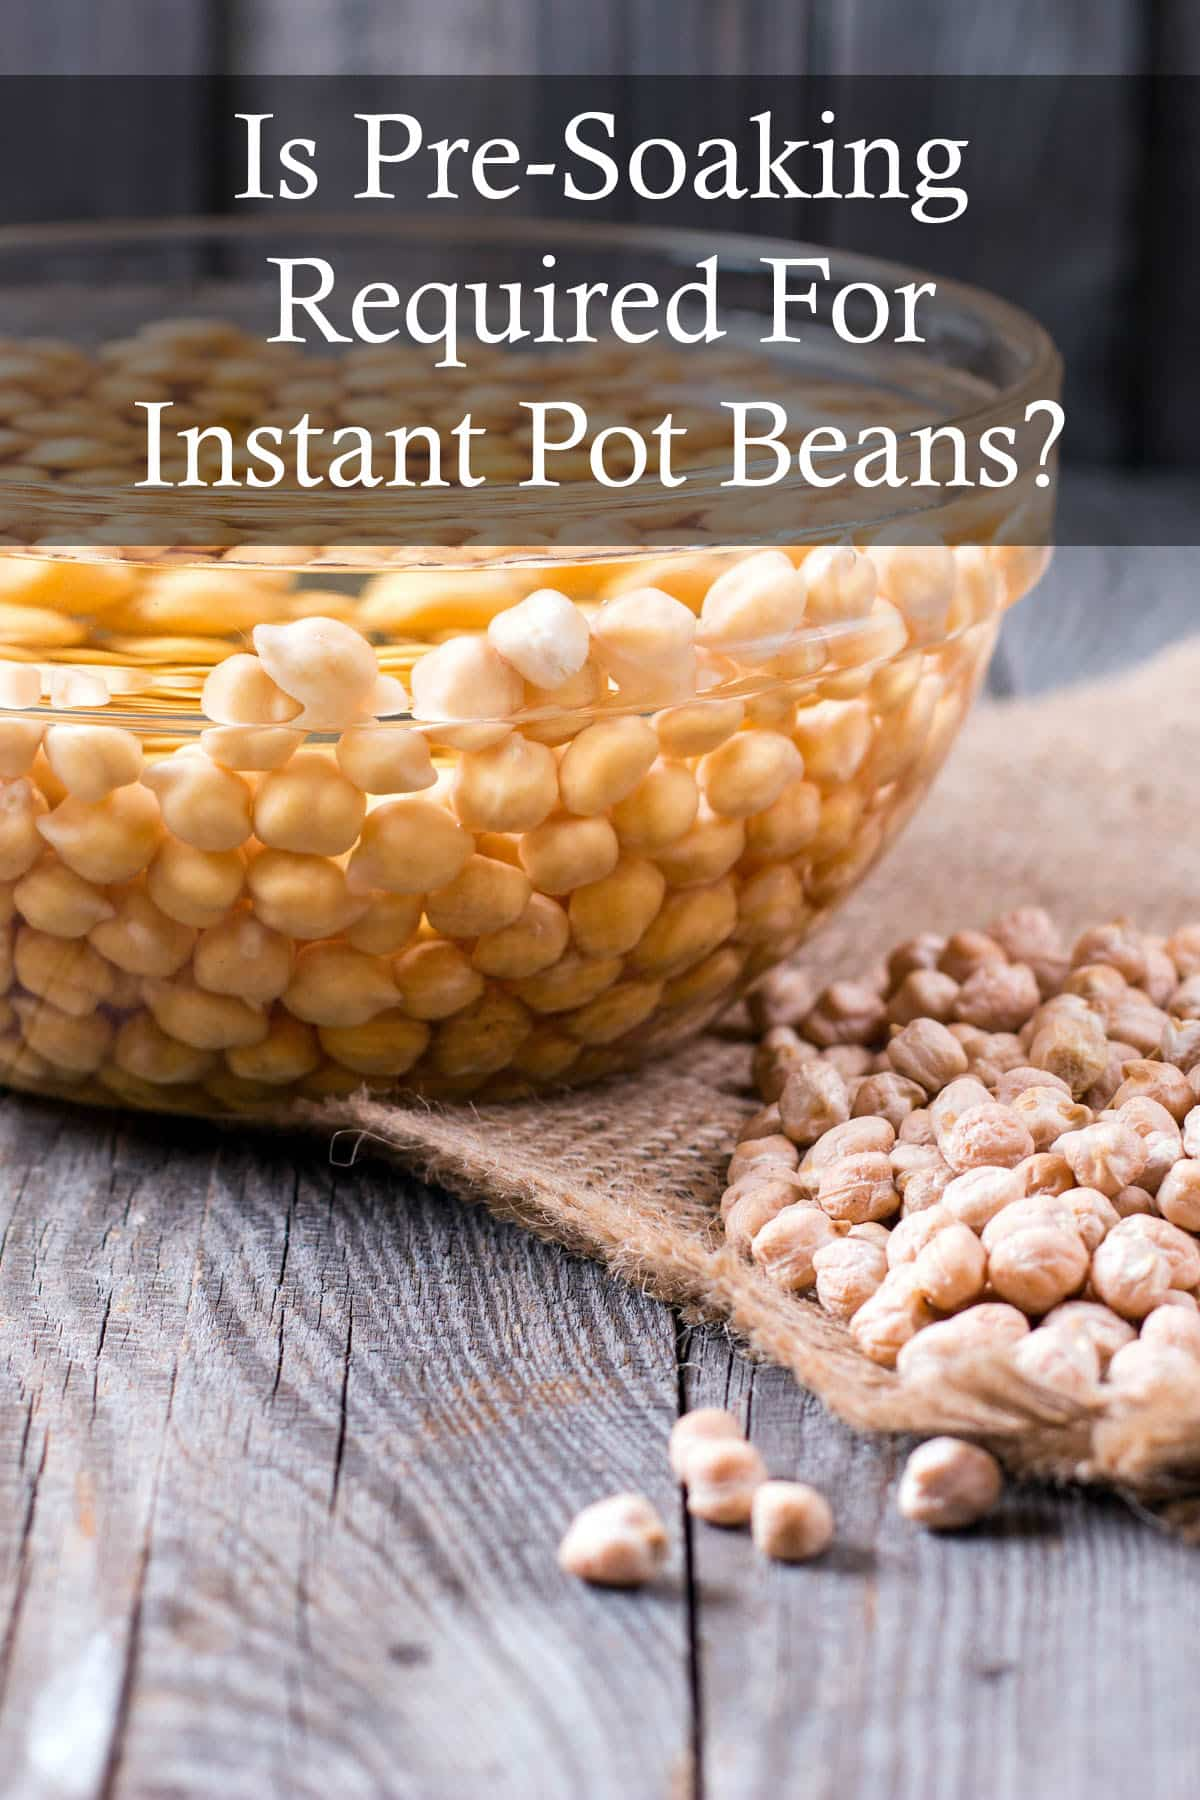 Instant Pot Beans: Is Pre-Soaking Required?